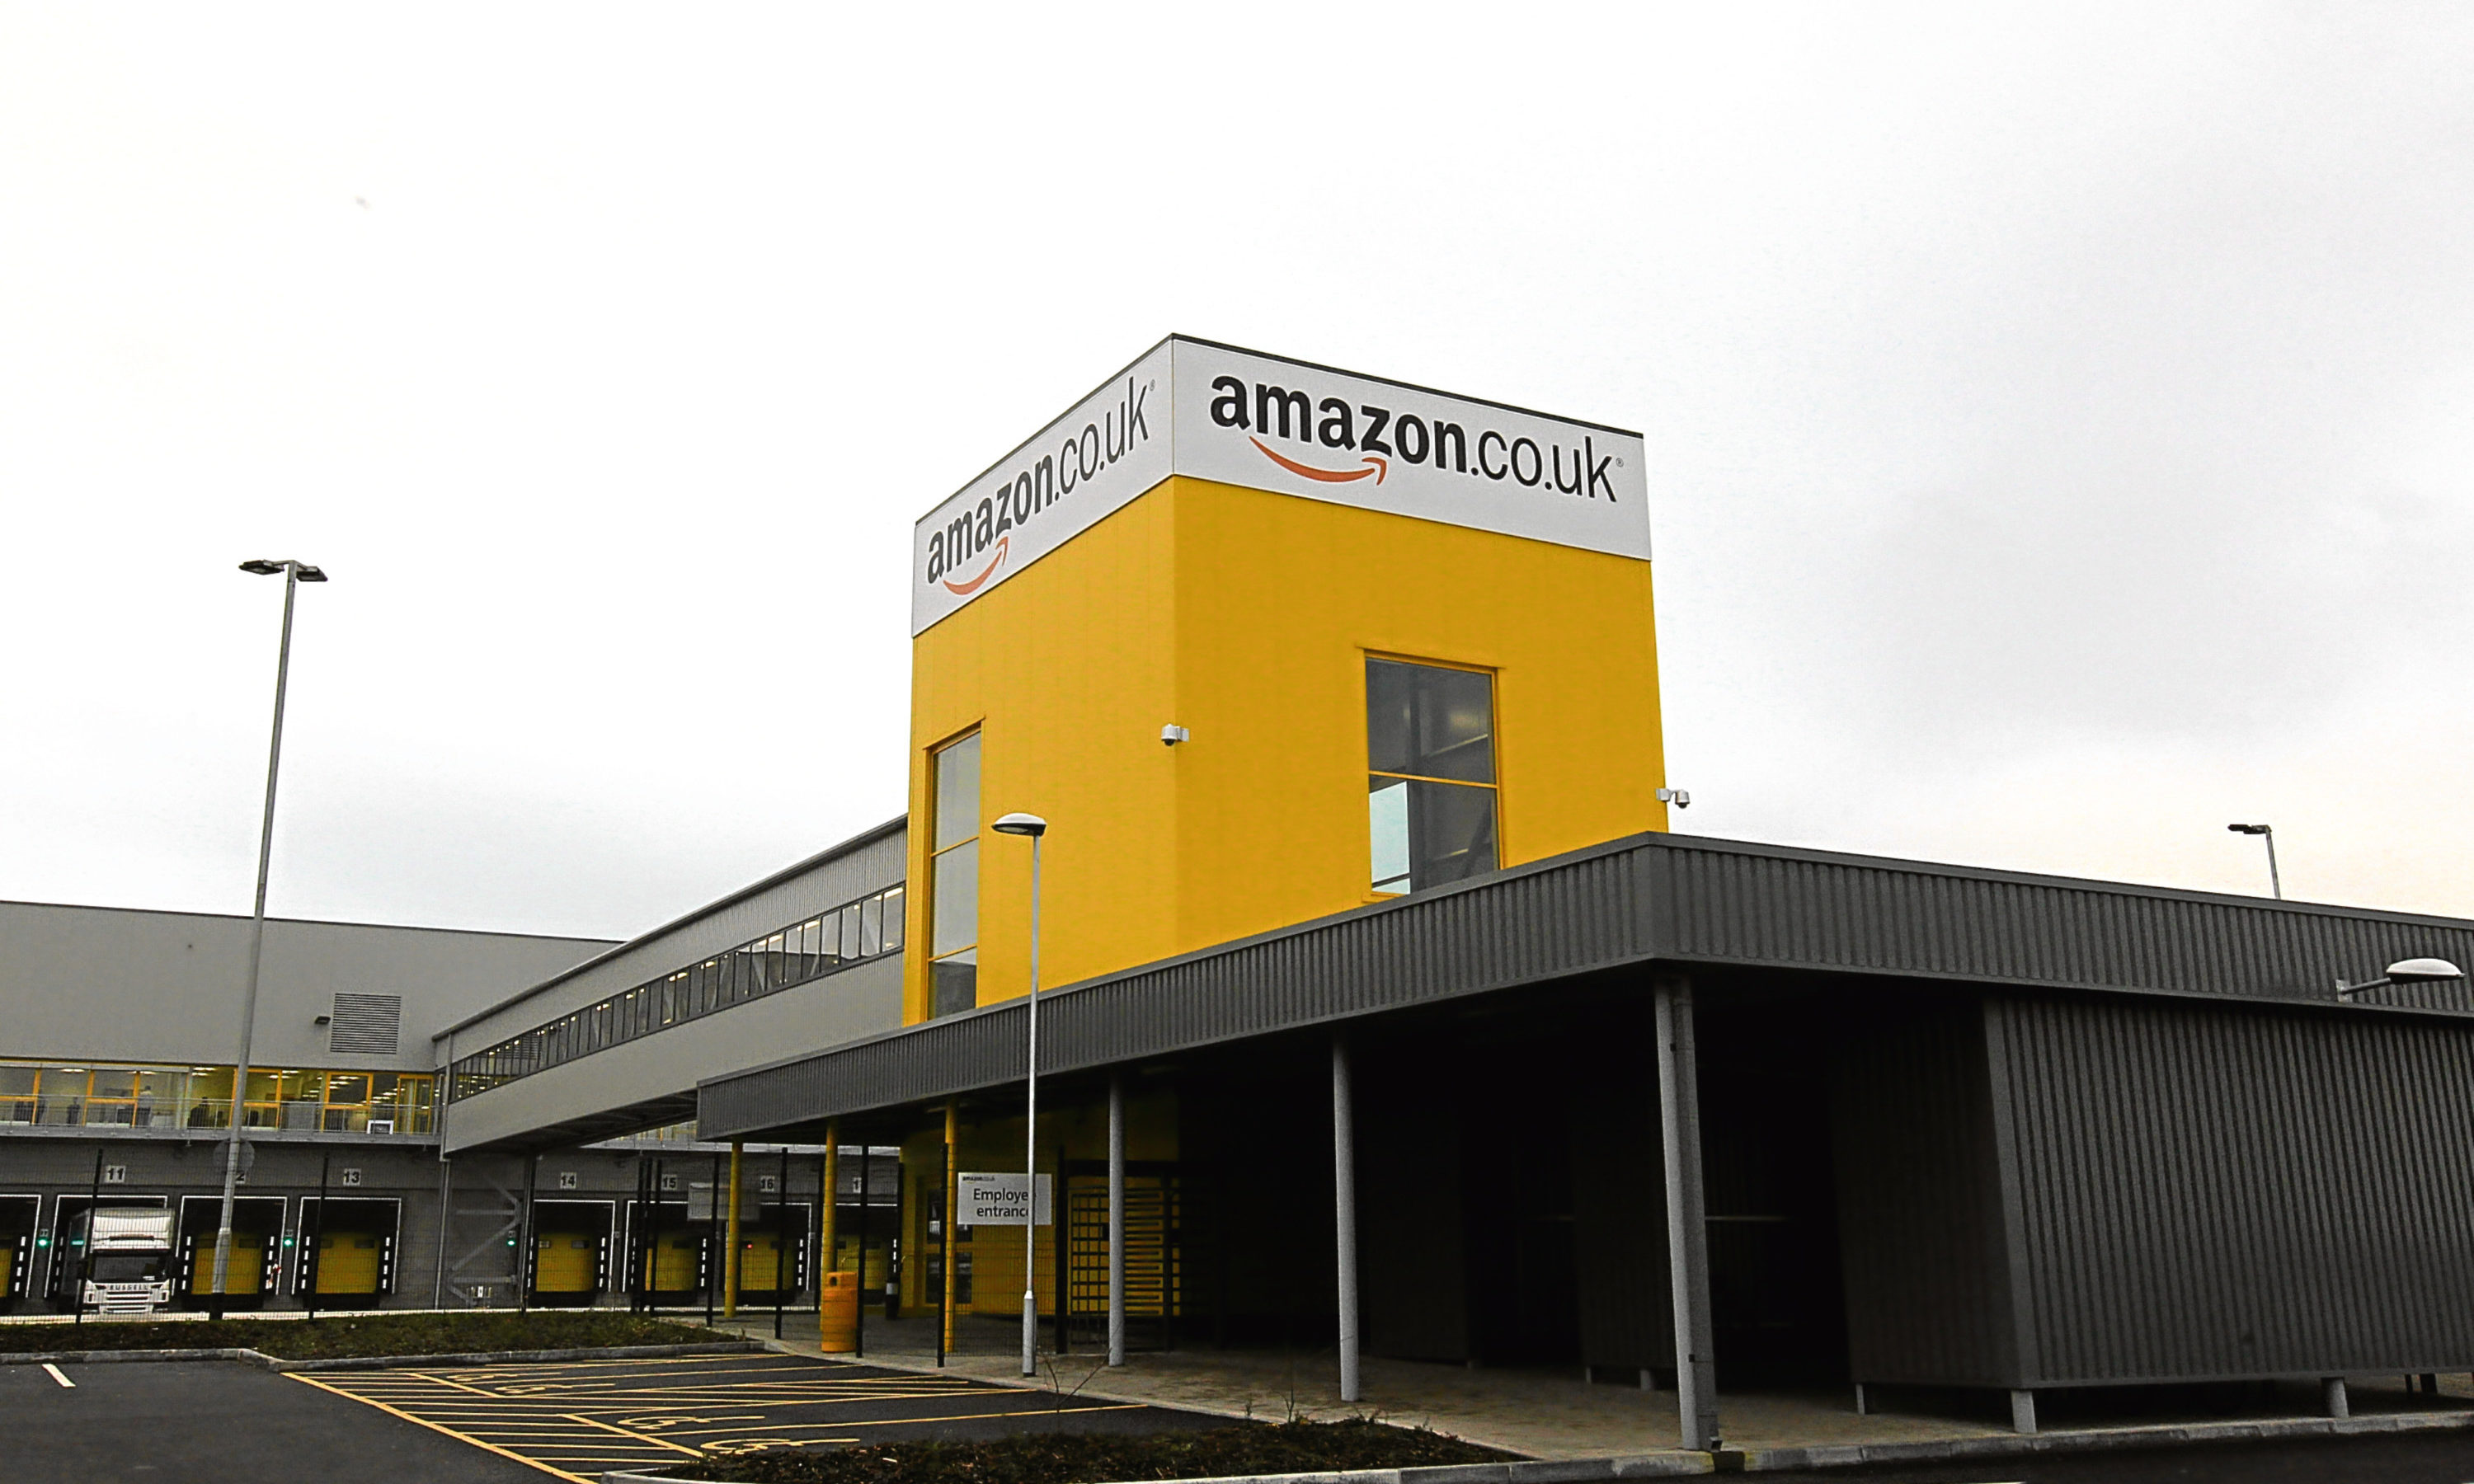 Amazon's Dunfermline fulfilment centre.